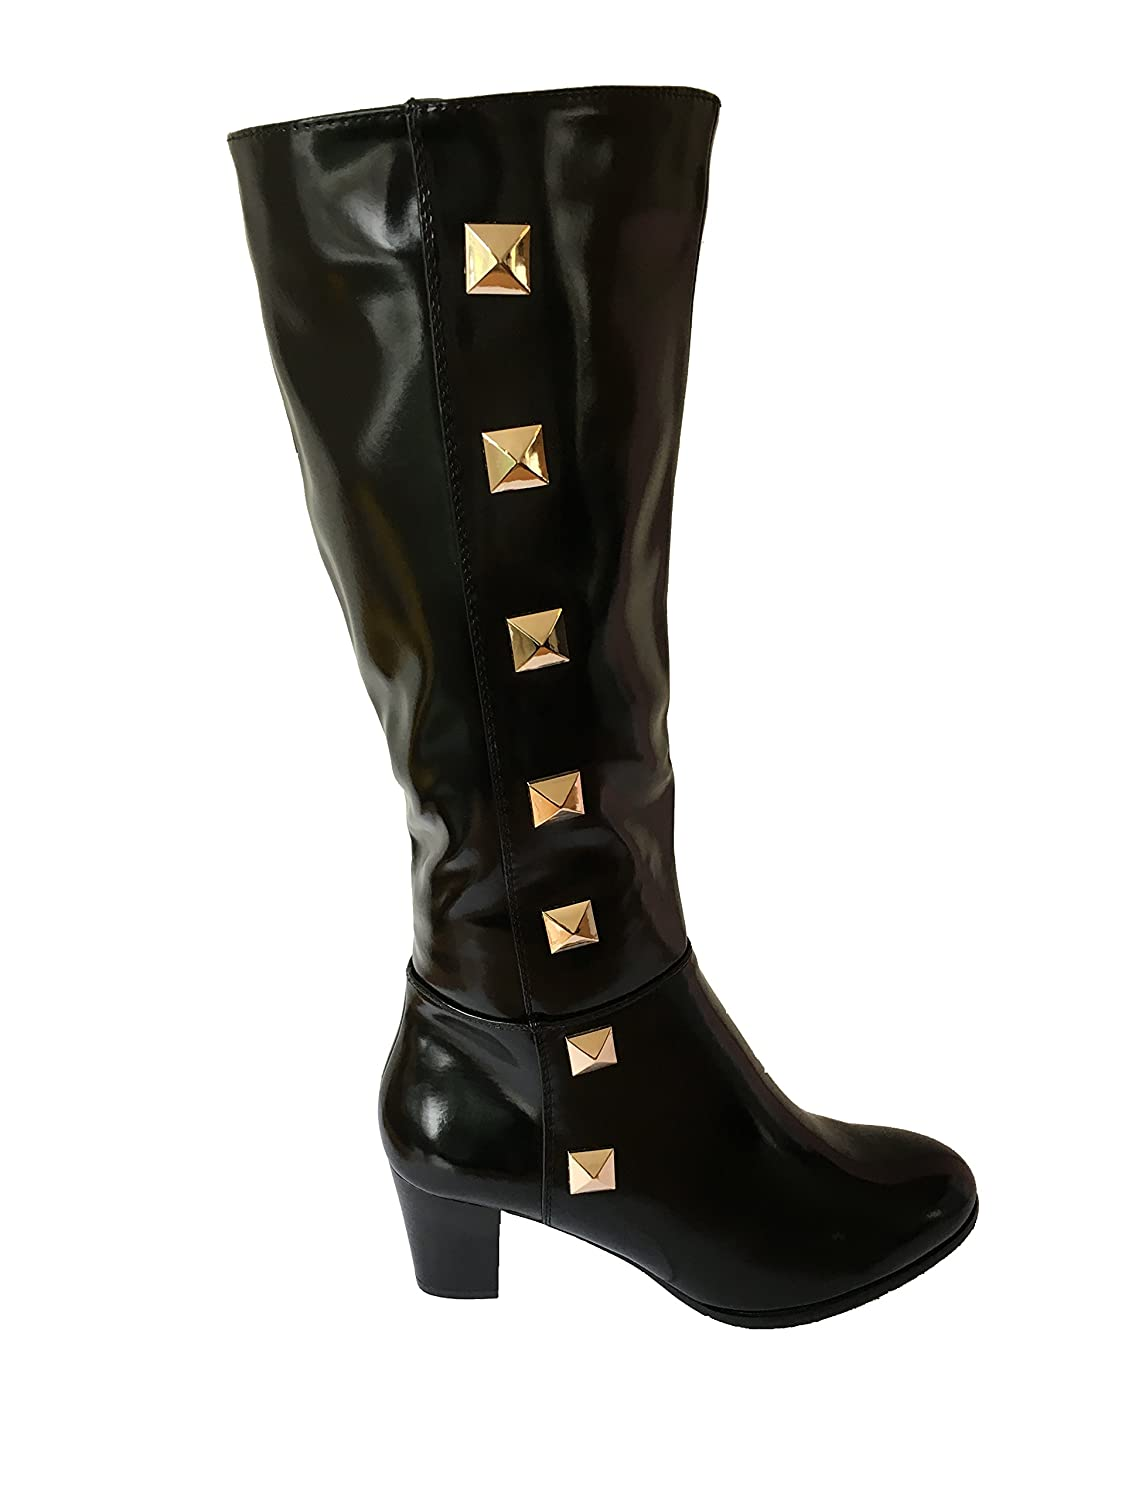 Ladies Knee High Boots With Soft Fur Lined Inner and Gold Colour ...